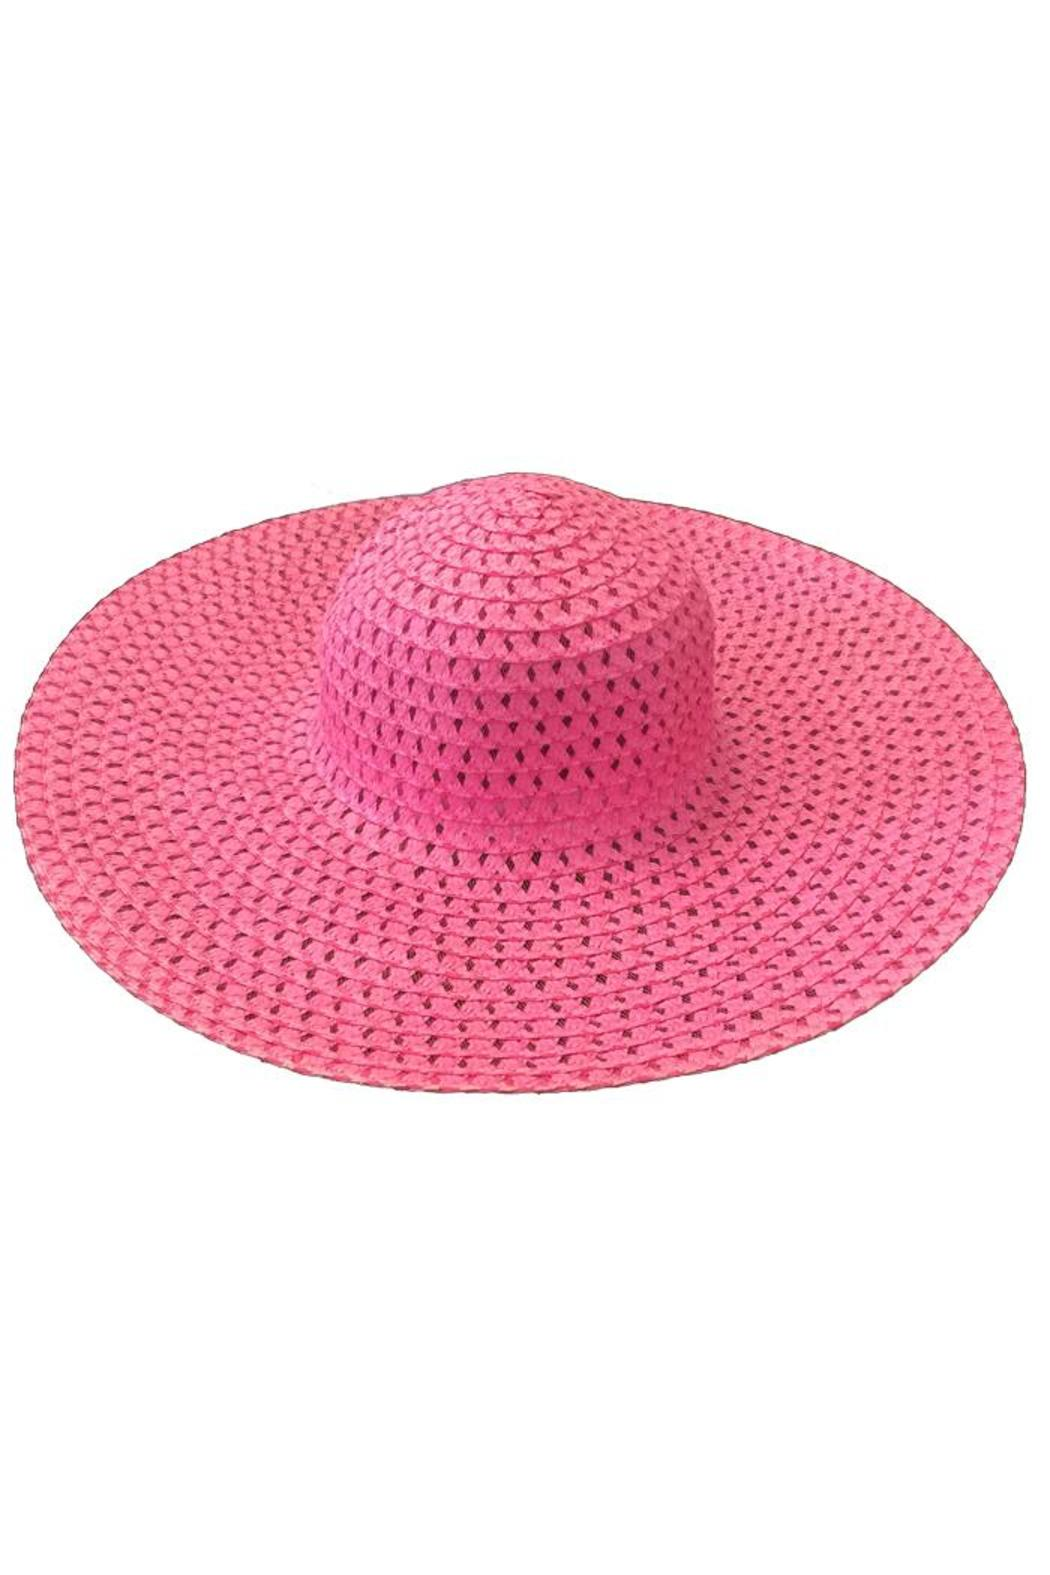 tu-anh boutique Pink Sunhat - Main Image